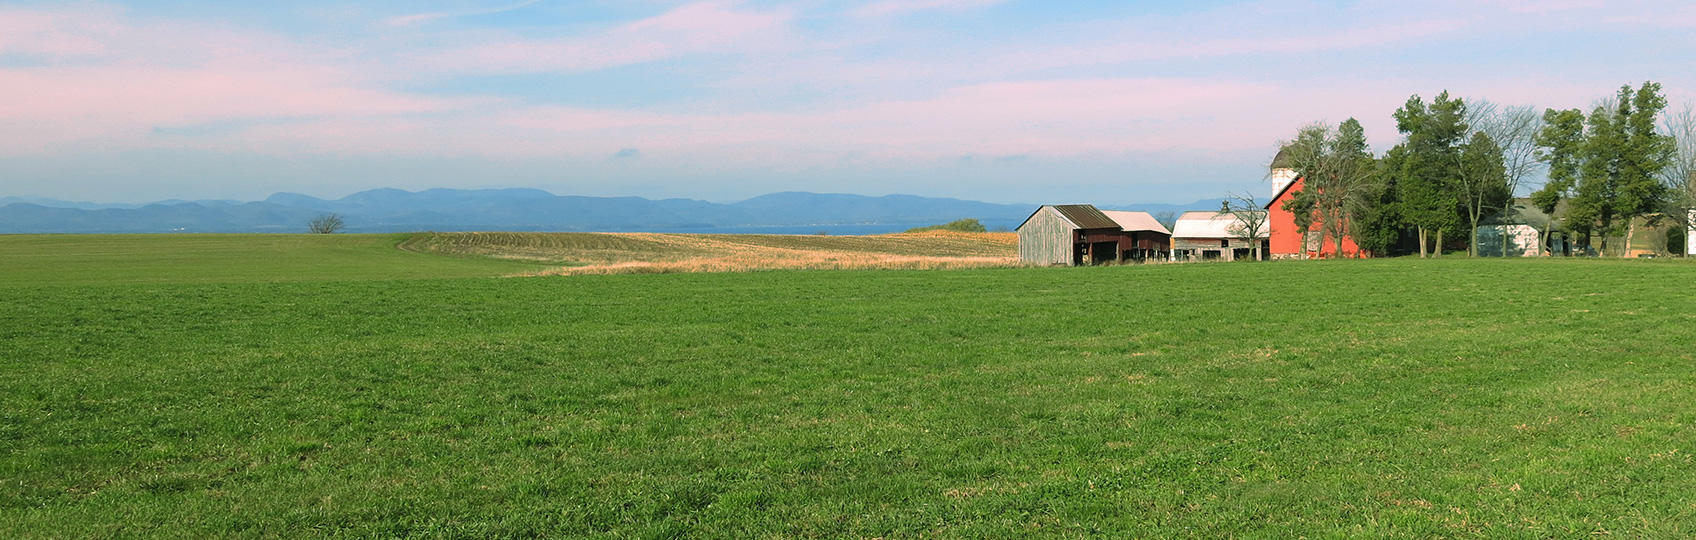 addison county vt land for sale